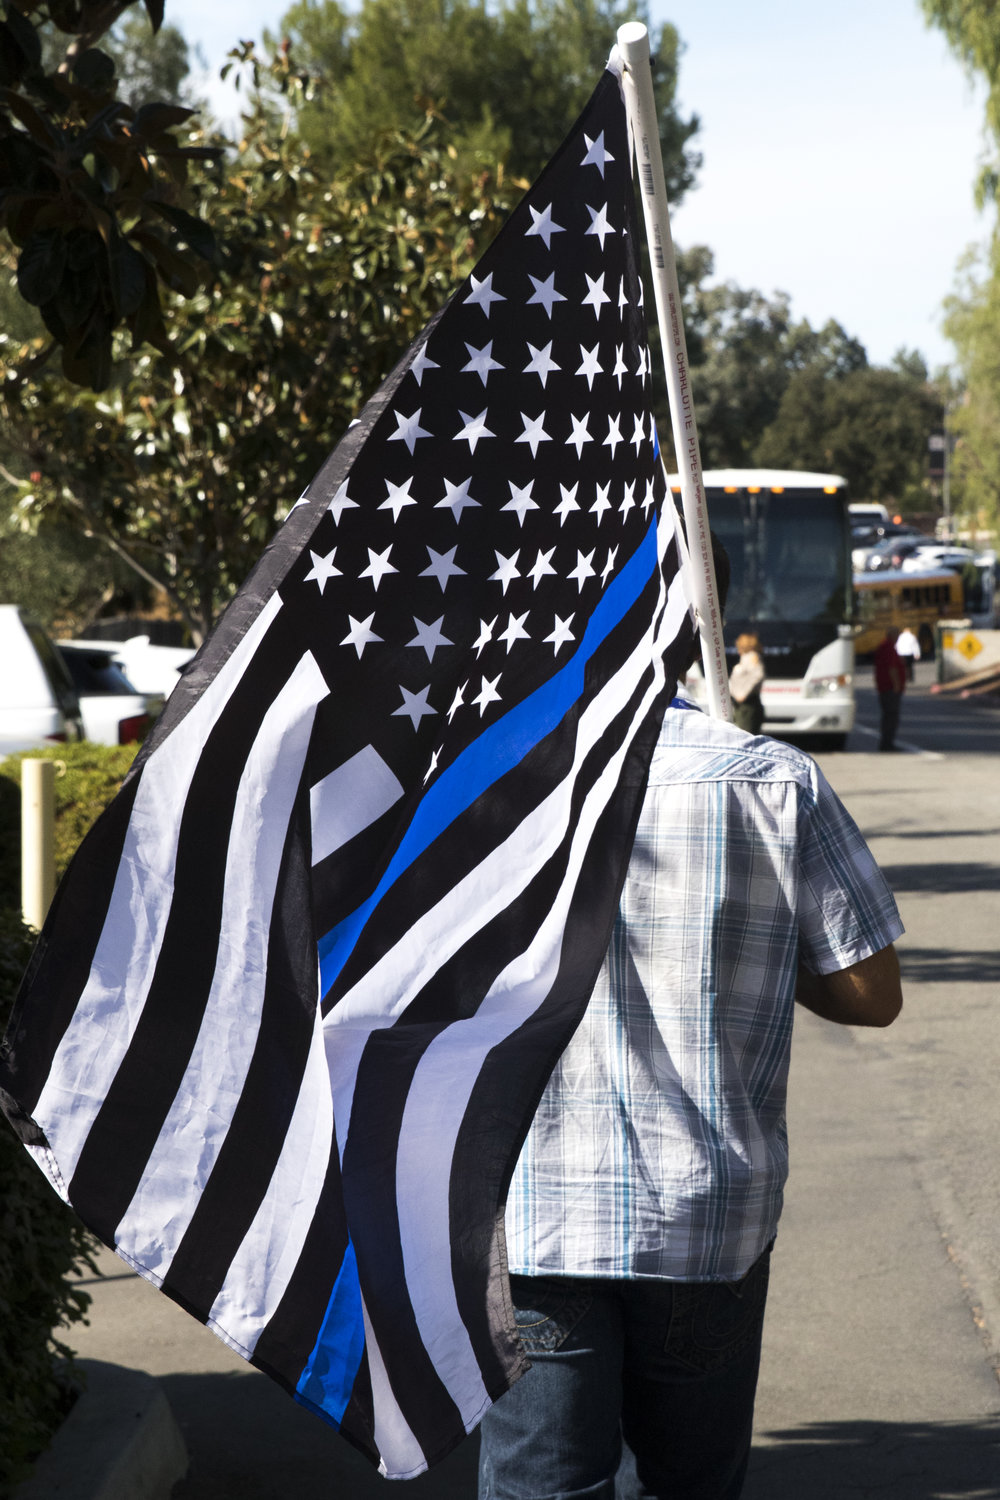 A man carries a Thing Blue Line Flag to represent support for law enforcement officers at the Calvary Community Church in Westlake Village, California on November 15, 2018. (Zane Meyer-Thornton/Corsair Photo)